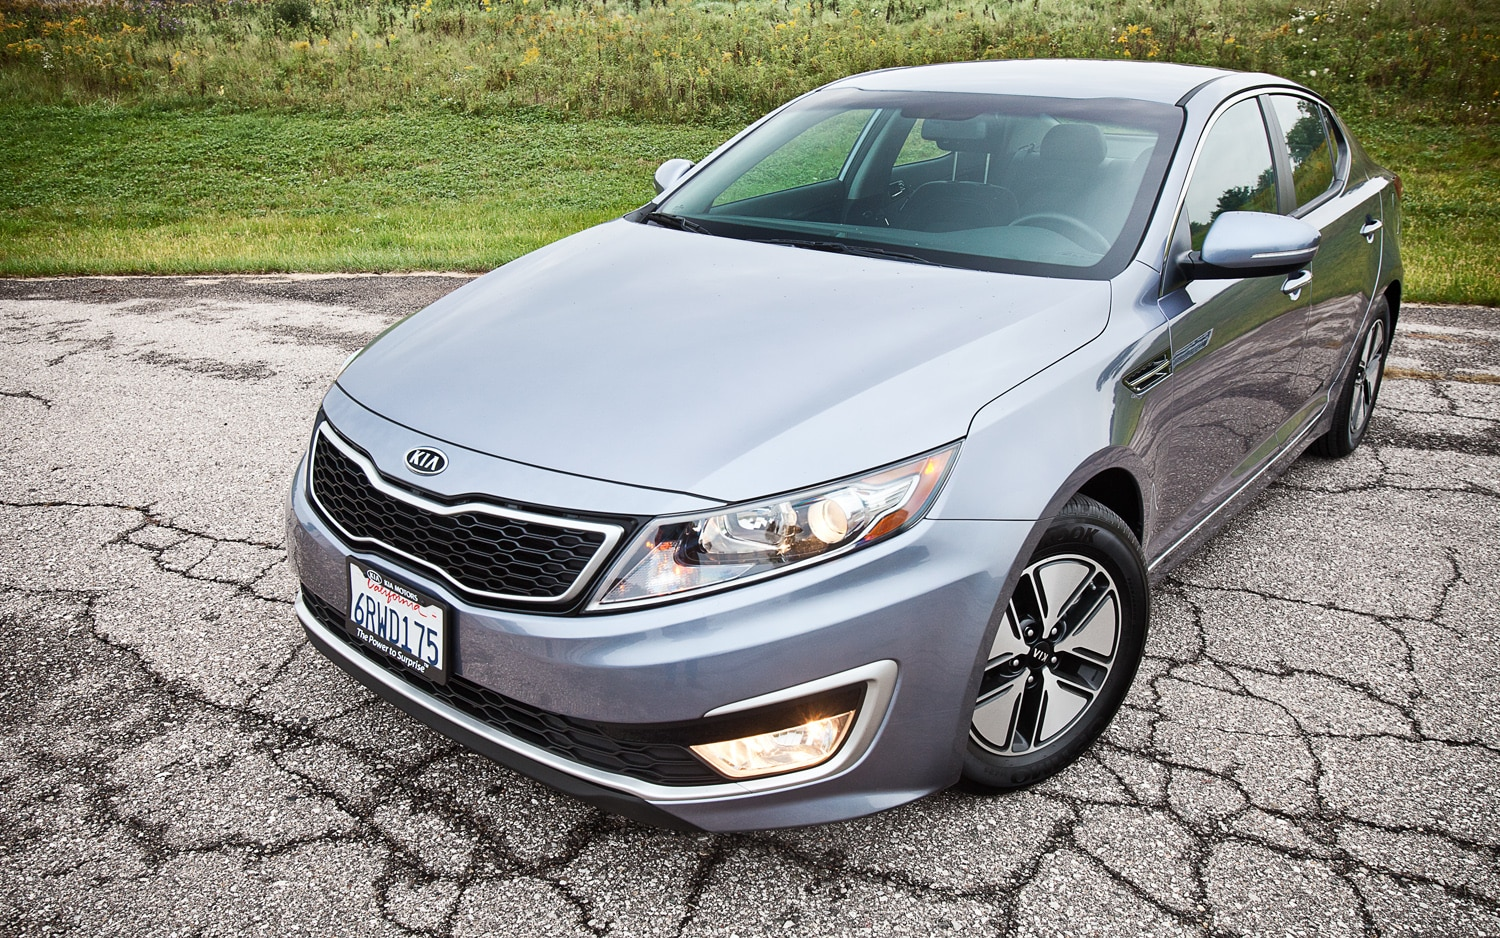 2011 Kia Optima Hybrid Front Left Side View1